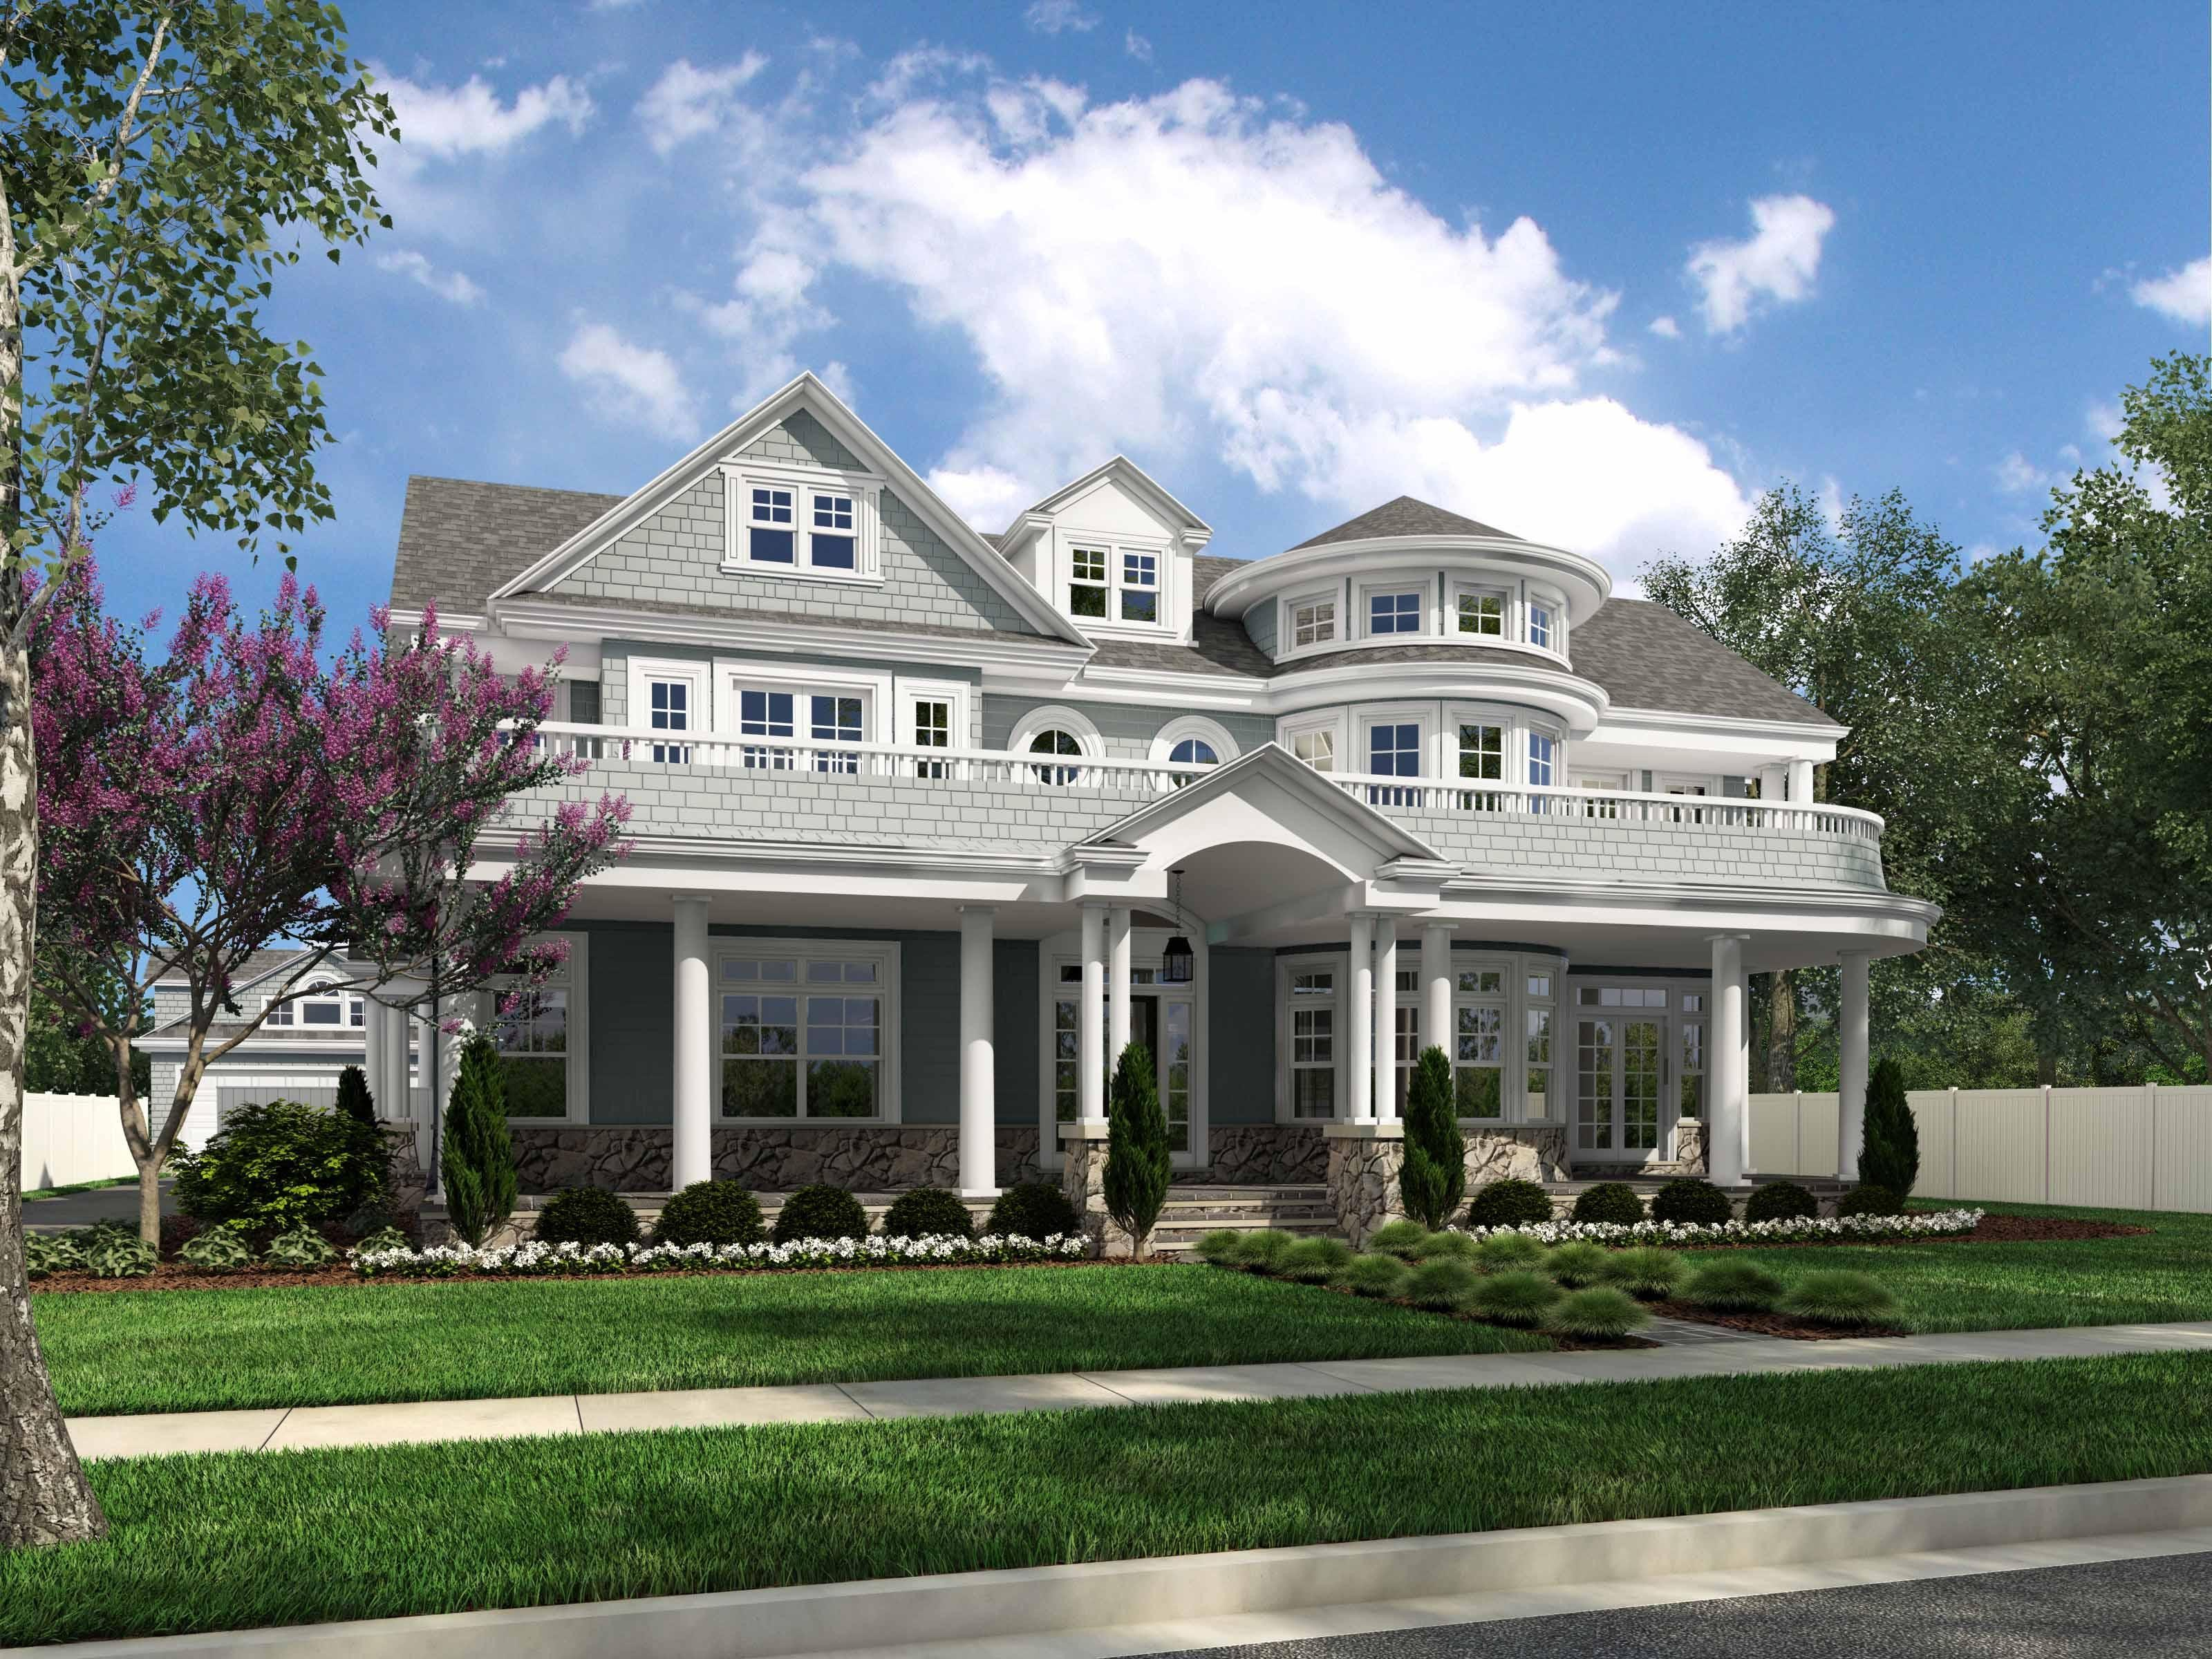 Brand New Homes For Sale In Nj